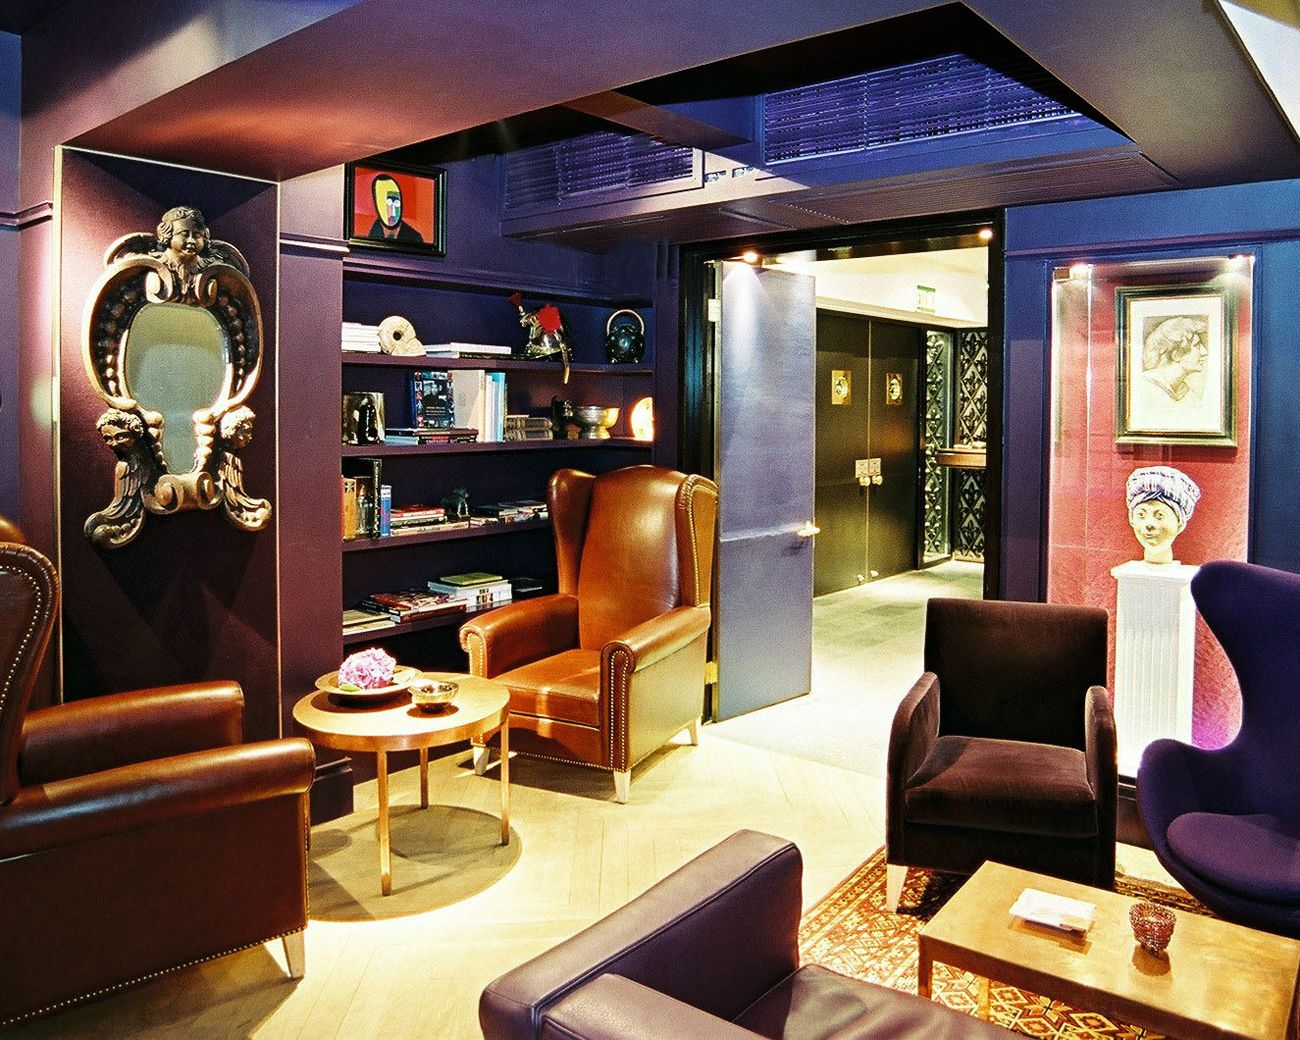 Here S A Photo Of The Interior Of Kee Club Central Hongkong Keeclubhk Members Only Bar Lounge Commercial Interiors Interior